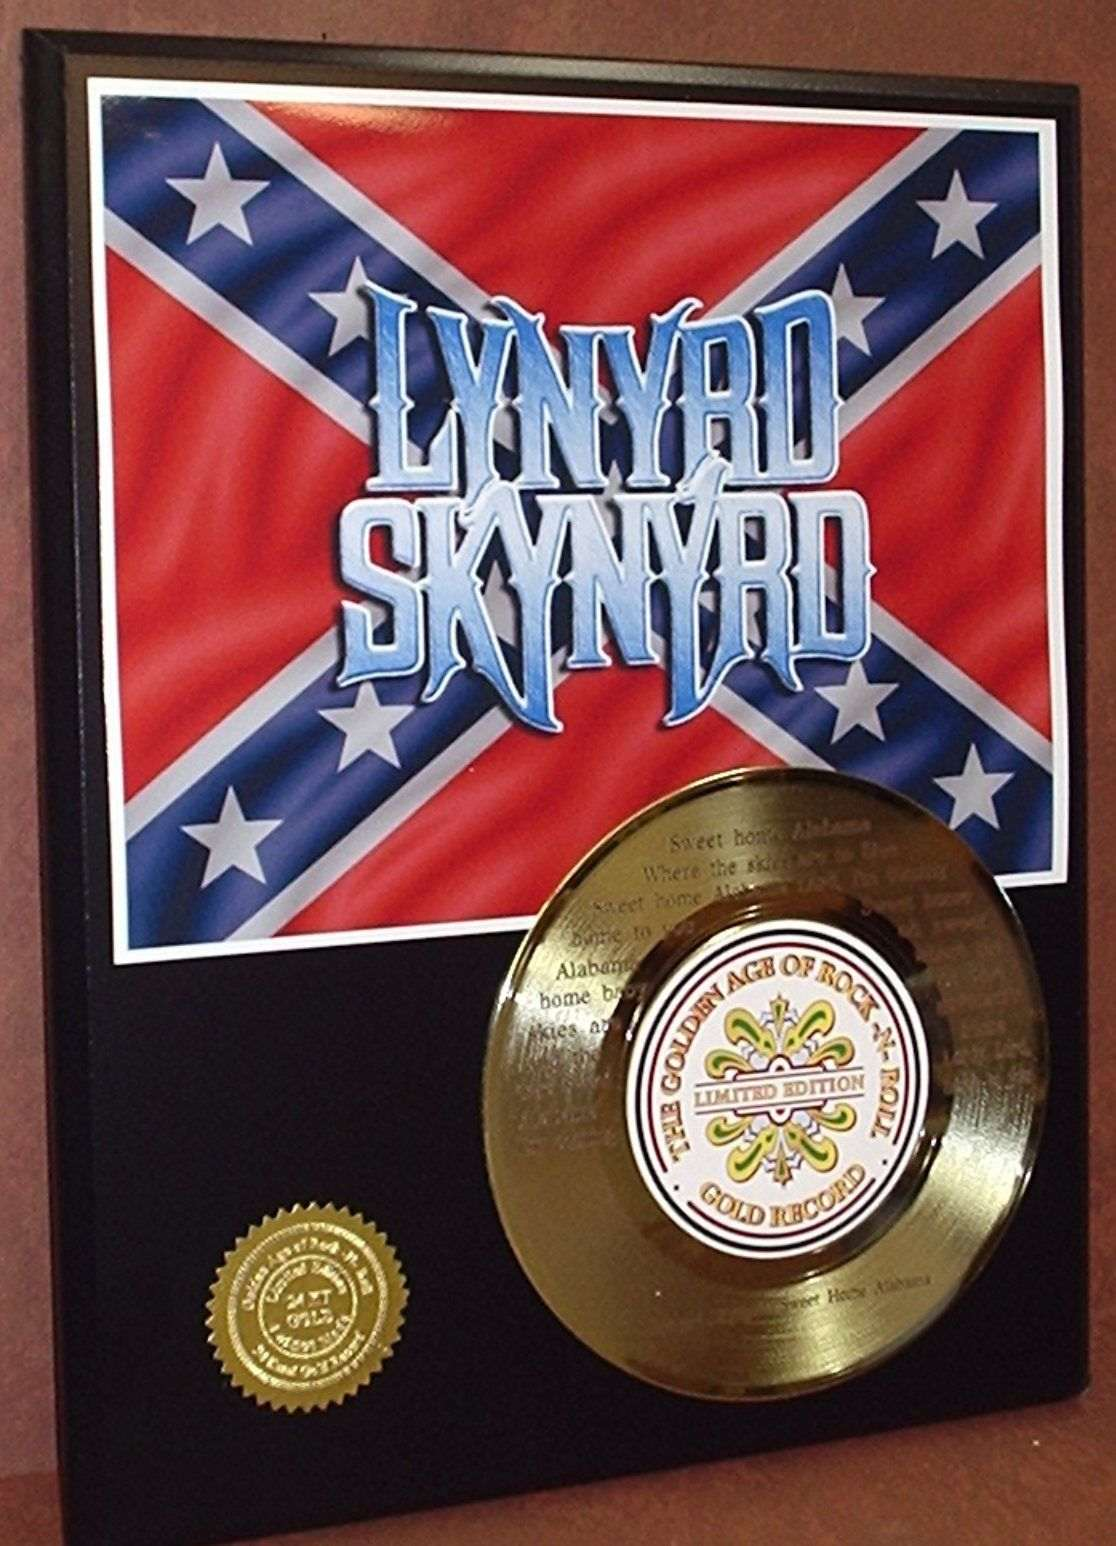 Sweet home alabama (oh, sweet home, baby) where the skies are so blue (and the governor's true) sweet home alabama … Lynyrd Skynyrd Sweet Home Alabama Etched Lyrics 45 Gold Record Ltd Edition Gold Record Outlet Album And Disc Collectible Memorabilia